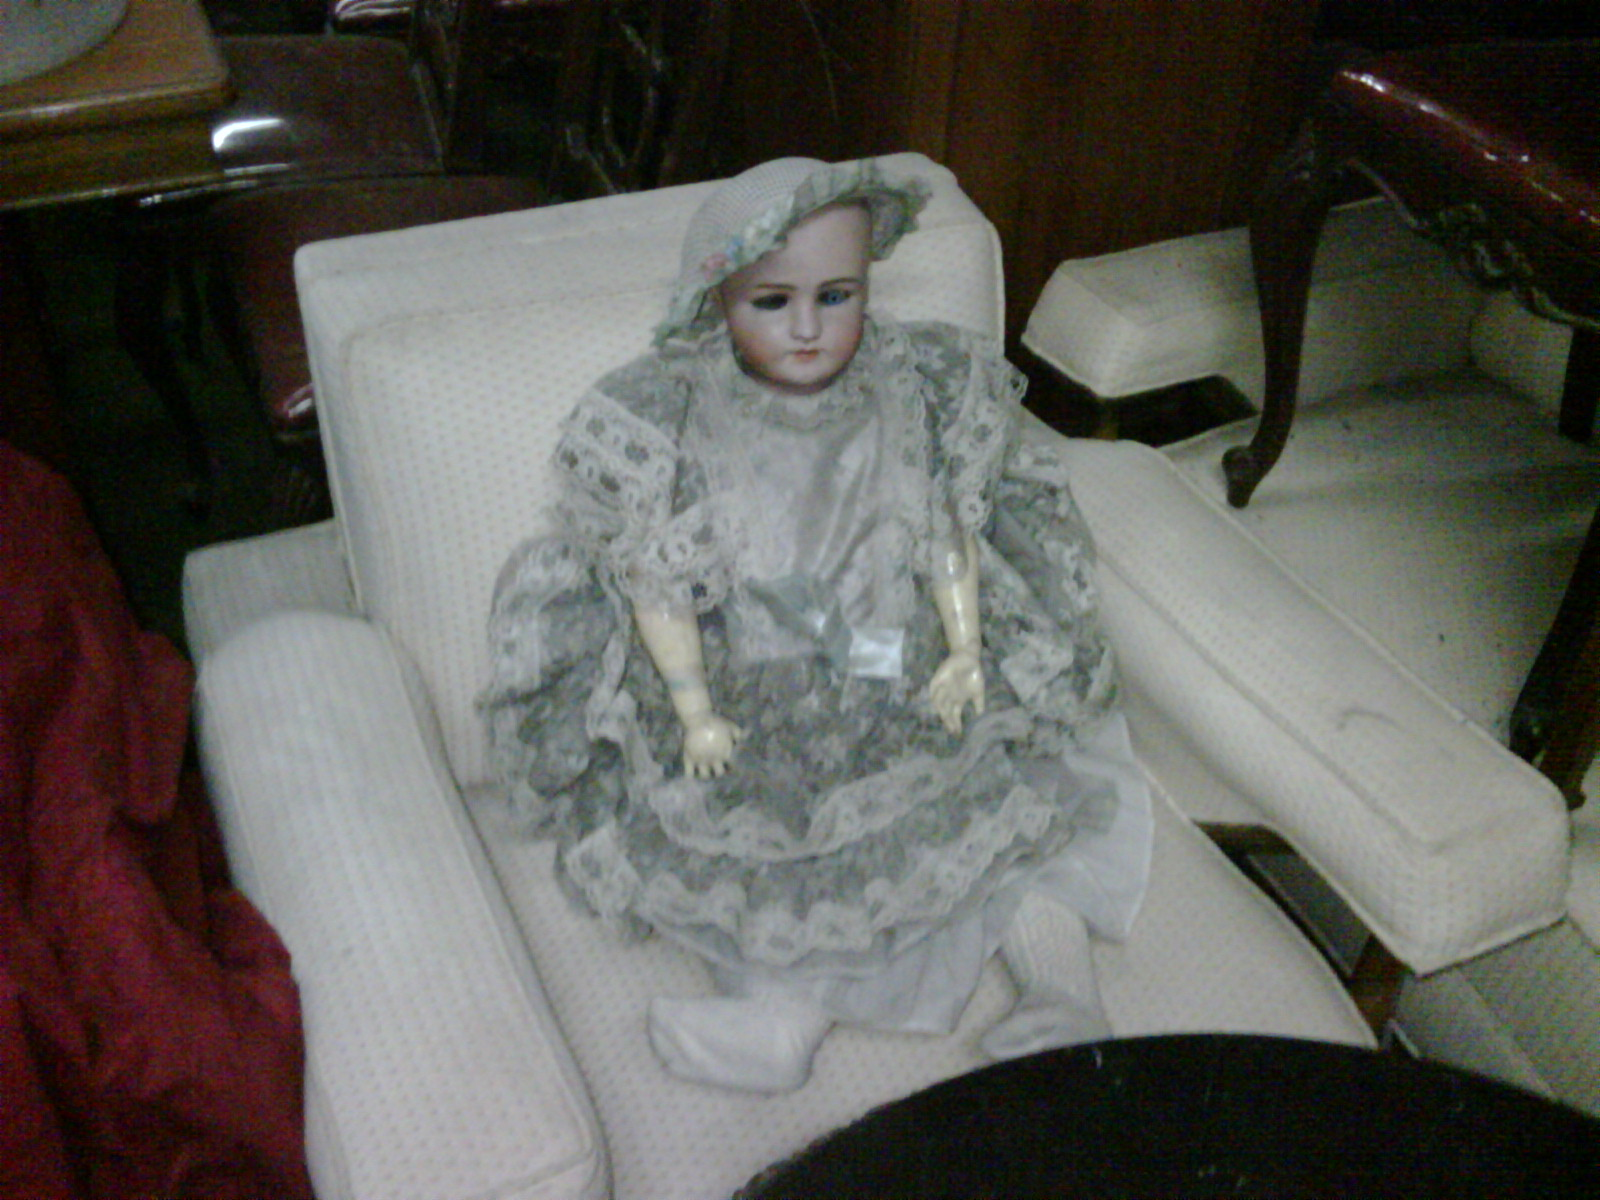 and some creepy doll. i guess there isnt anything that interesting in here.